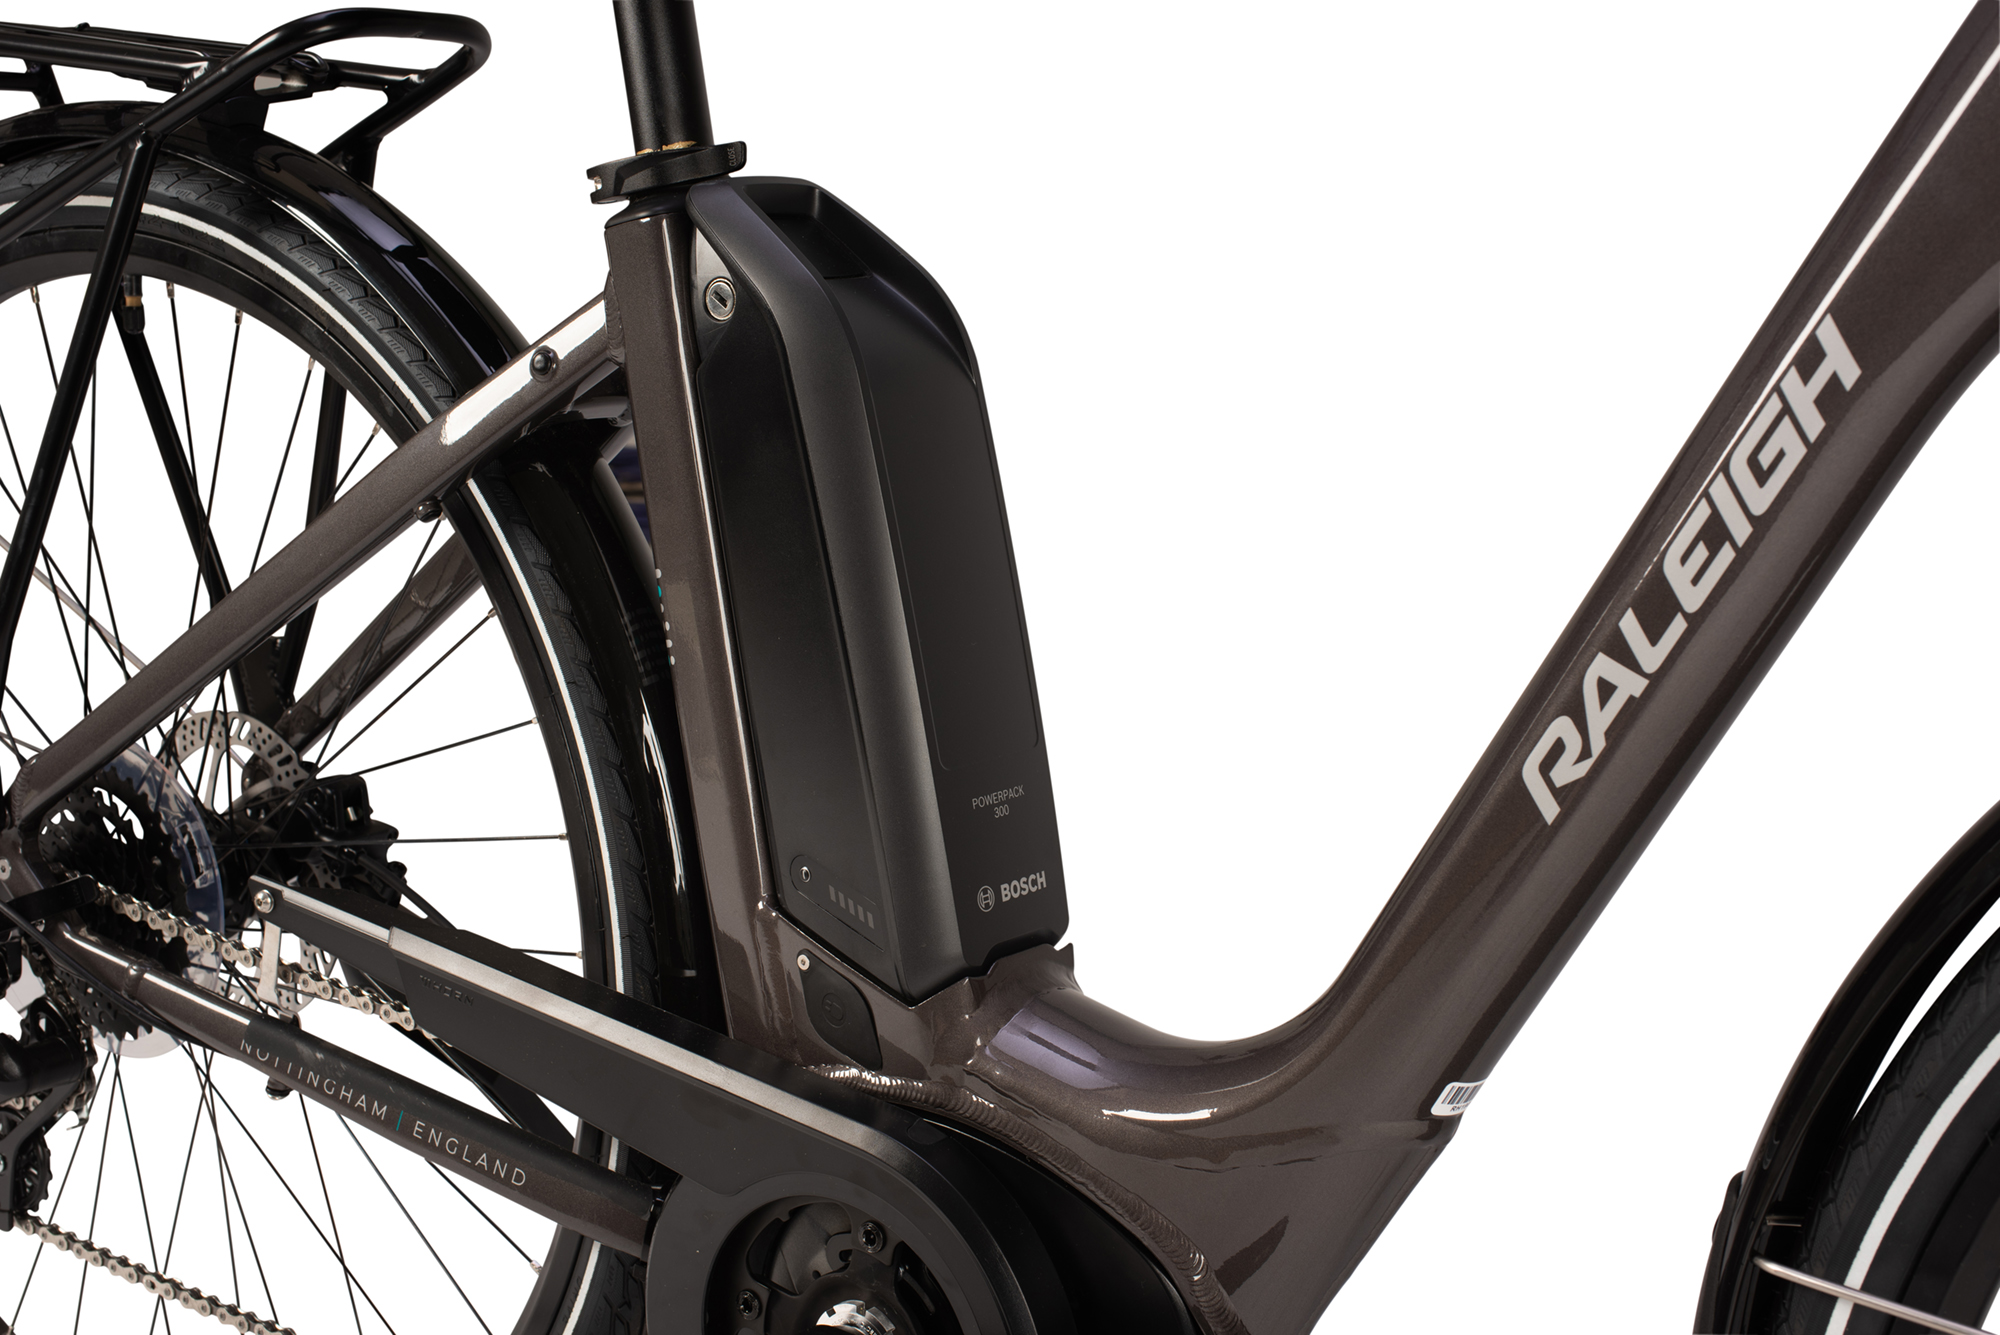 Low step frame on the Raleigh Motus electric bike in grey colour